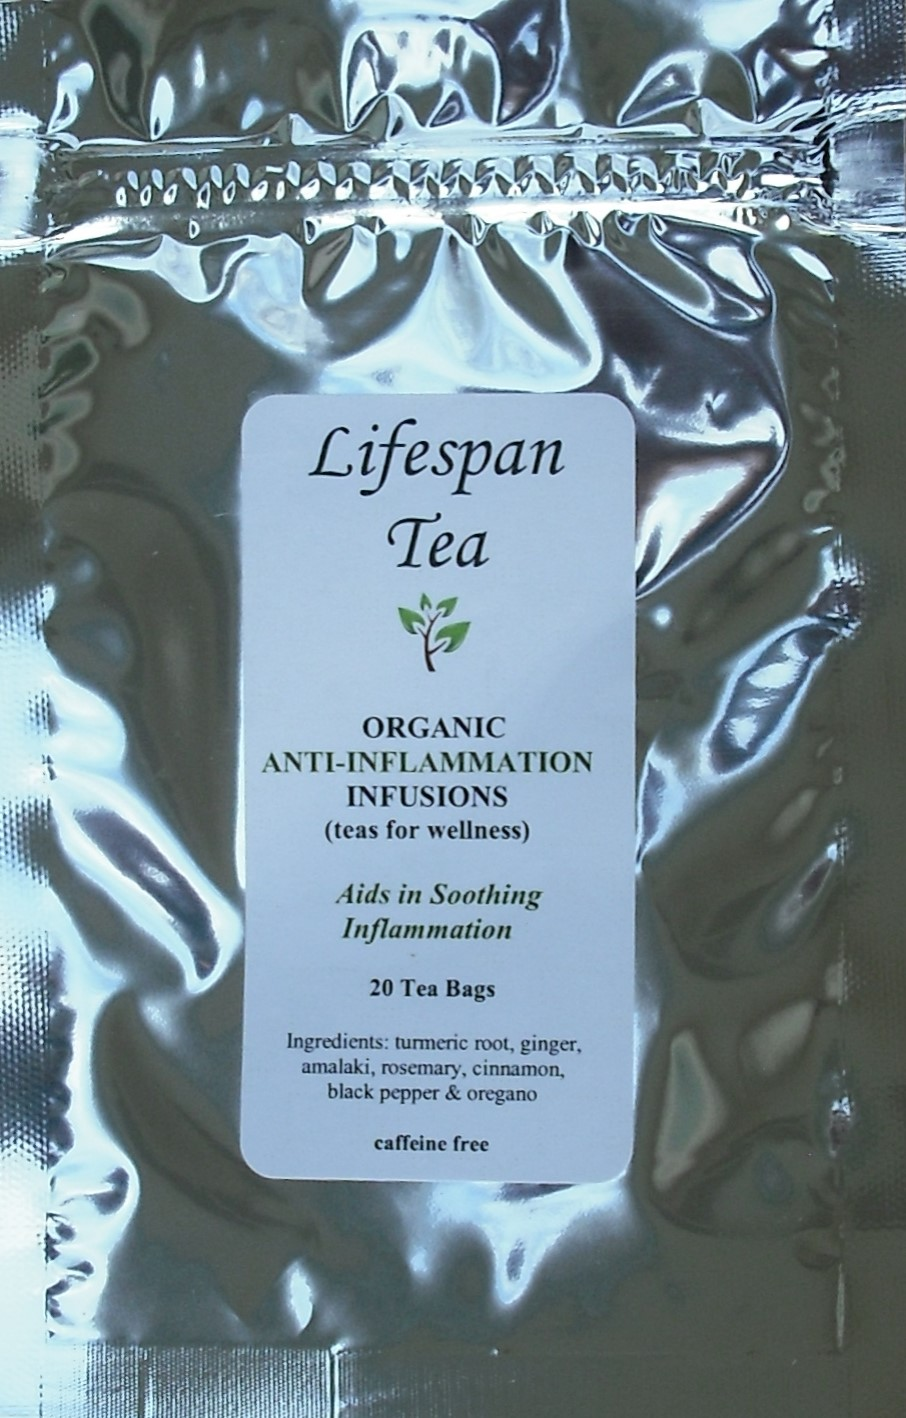 Anti-Inflammation Infusions (20 Tea Bags)